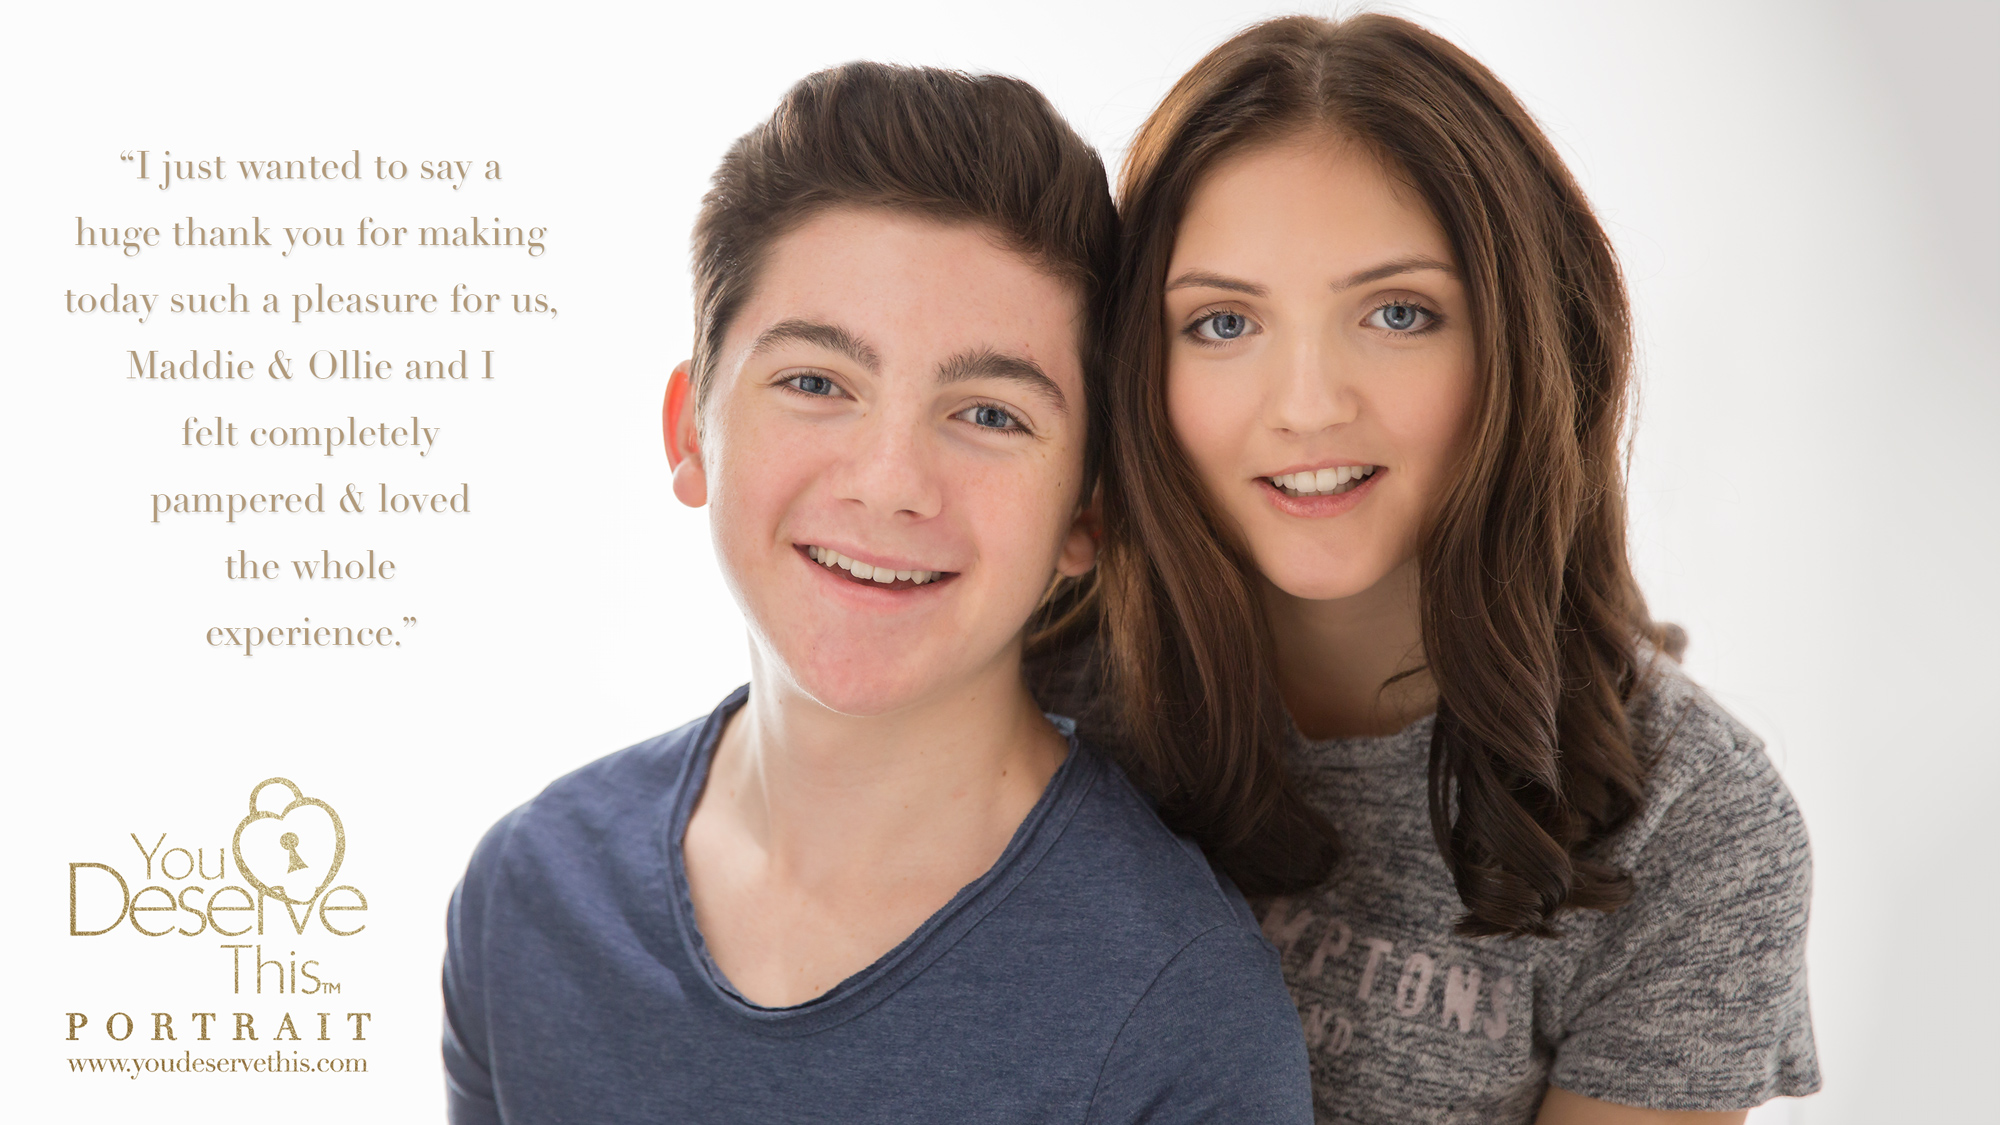 Brother and Sister photoshoot. Would you love to have beautiful portraits of your children? Probably the most important things you will ever own. Contact us today and we will start planning your  makeover and photoshoot .